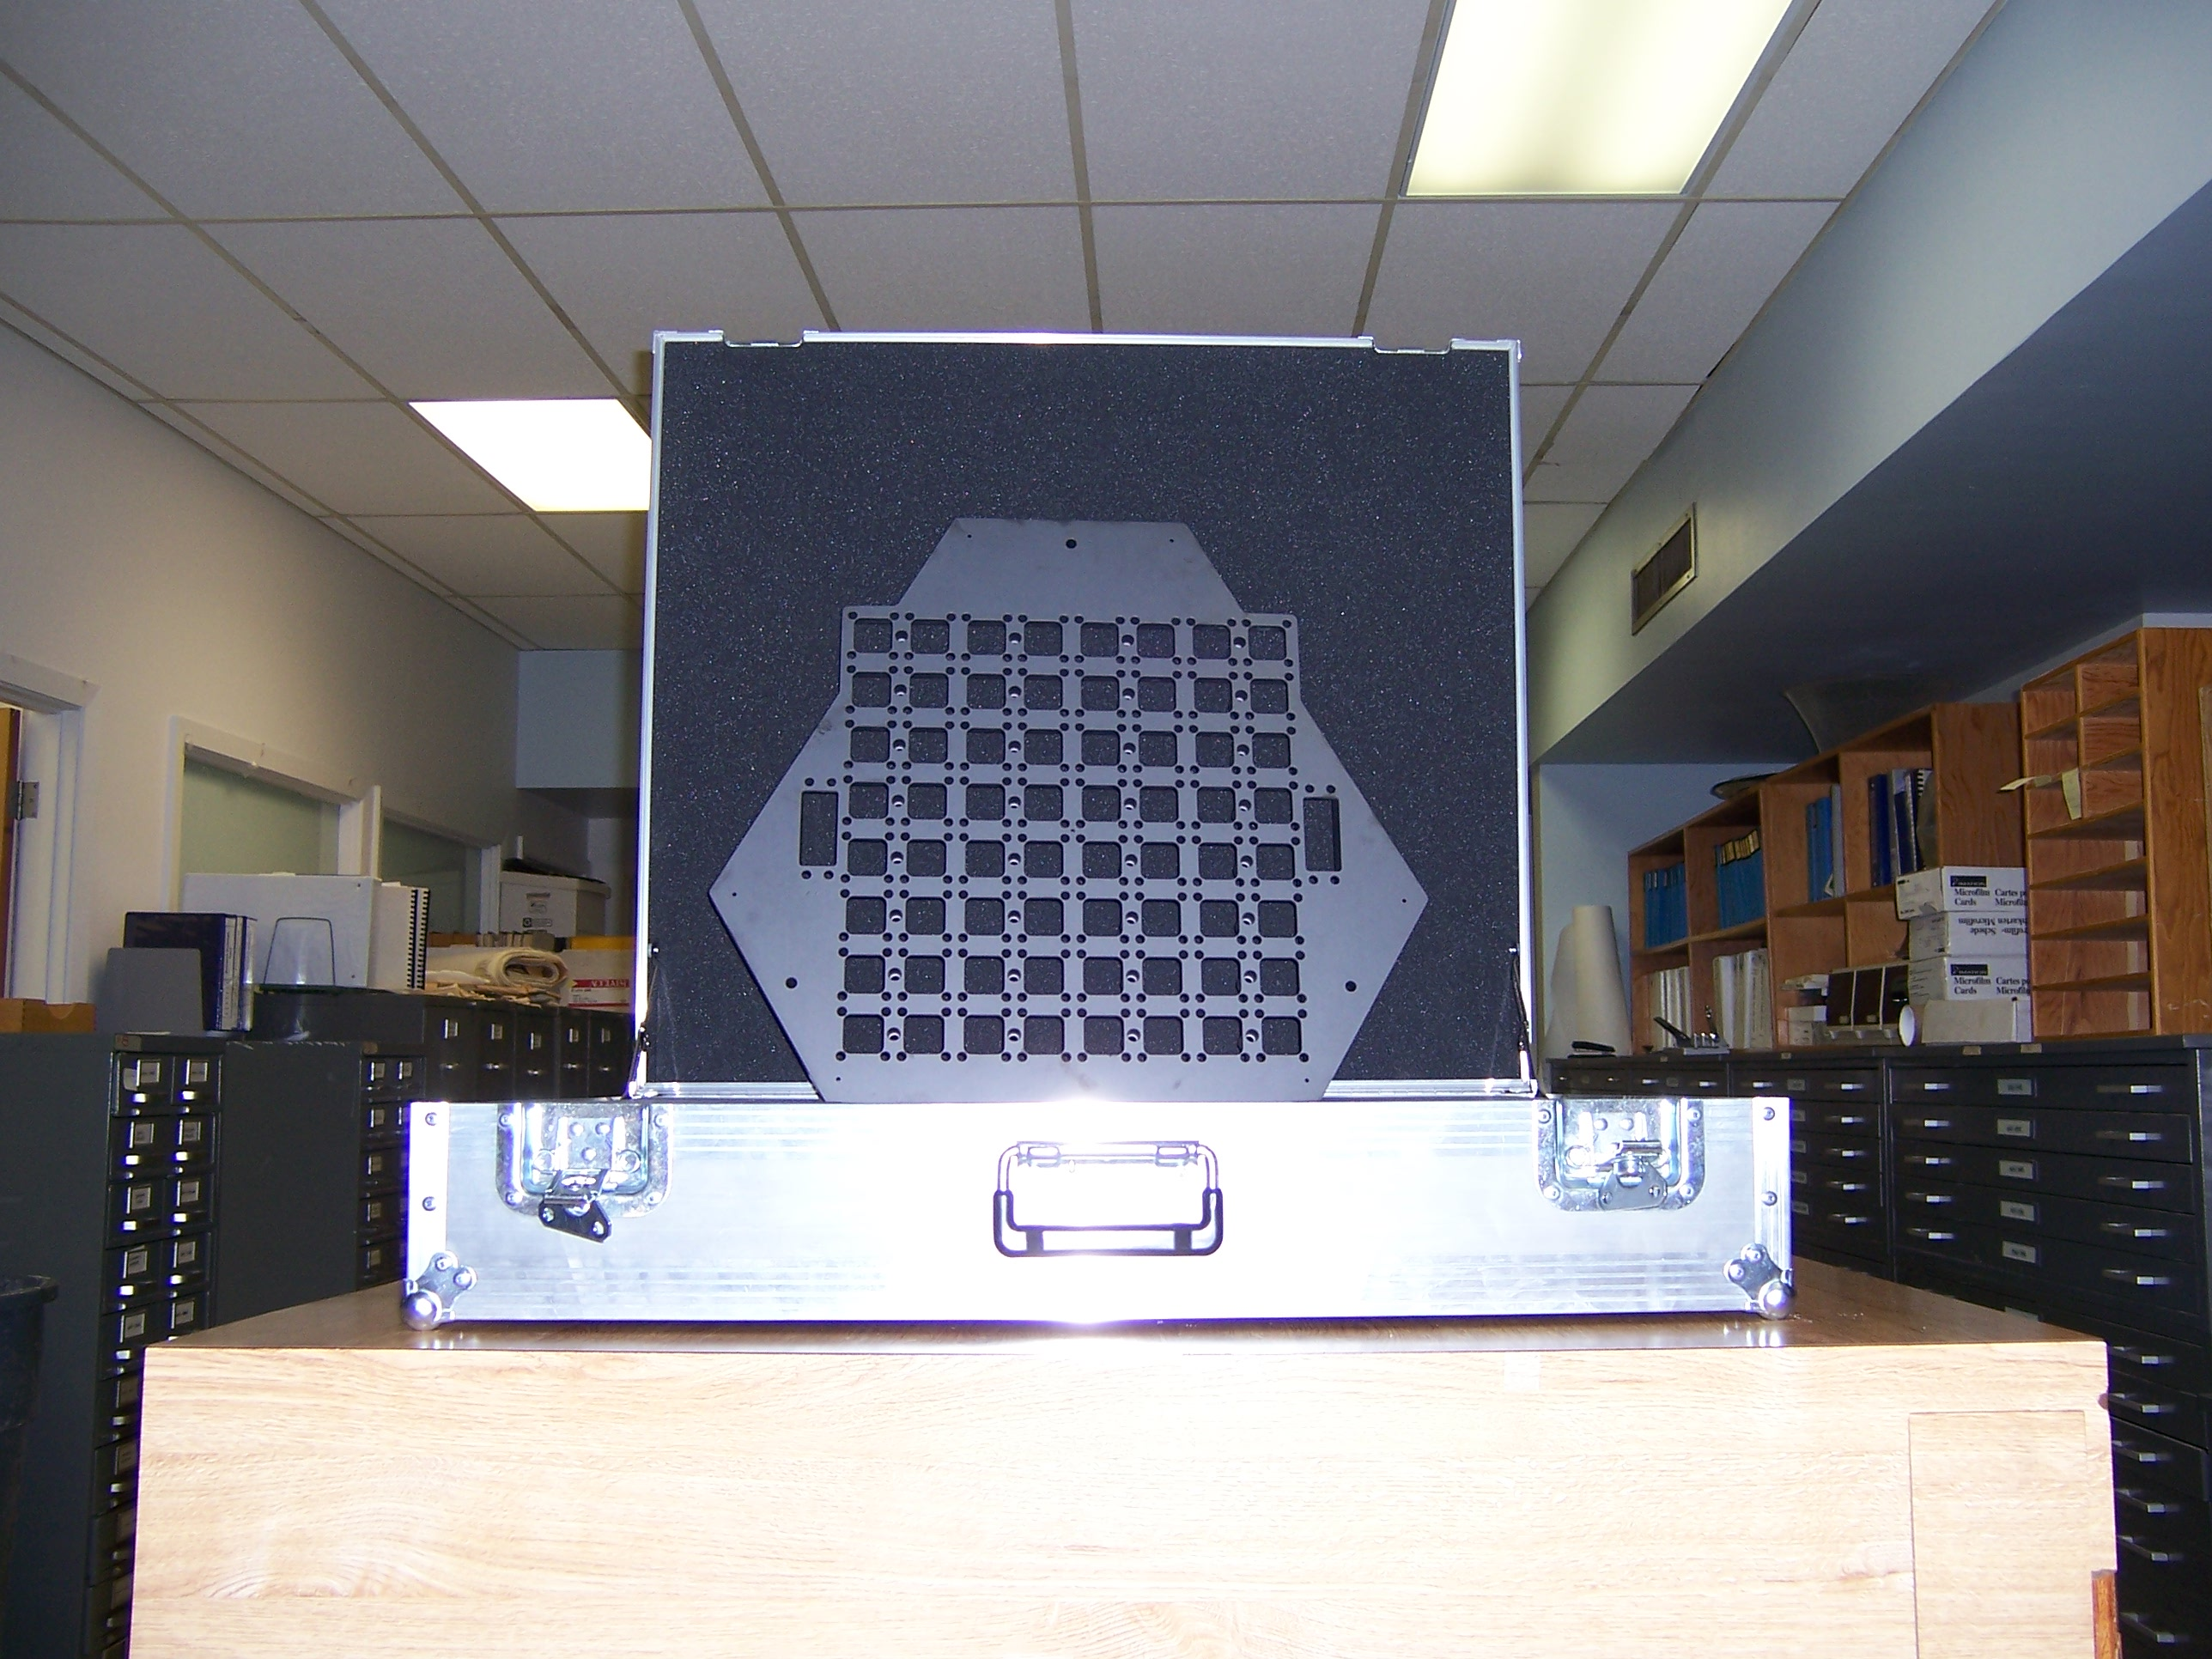 ODI base plate made of silicon carbide. The size of the rectangular area is about 40cm x 40cm.